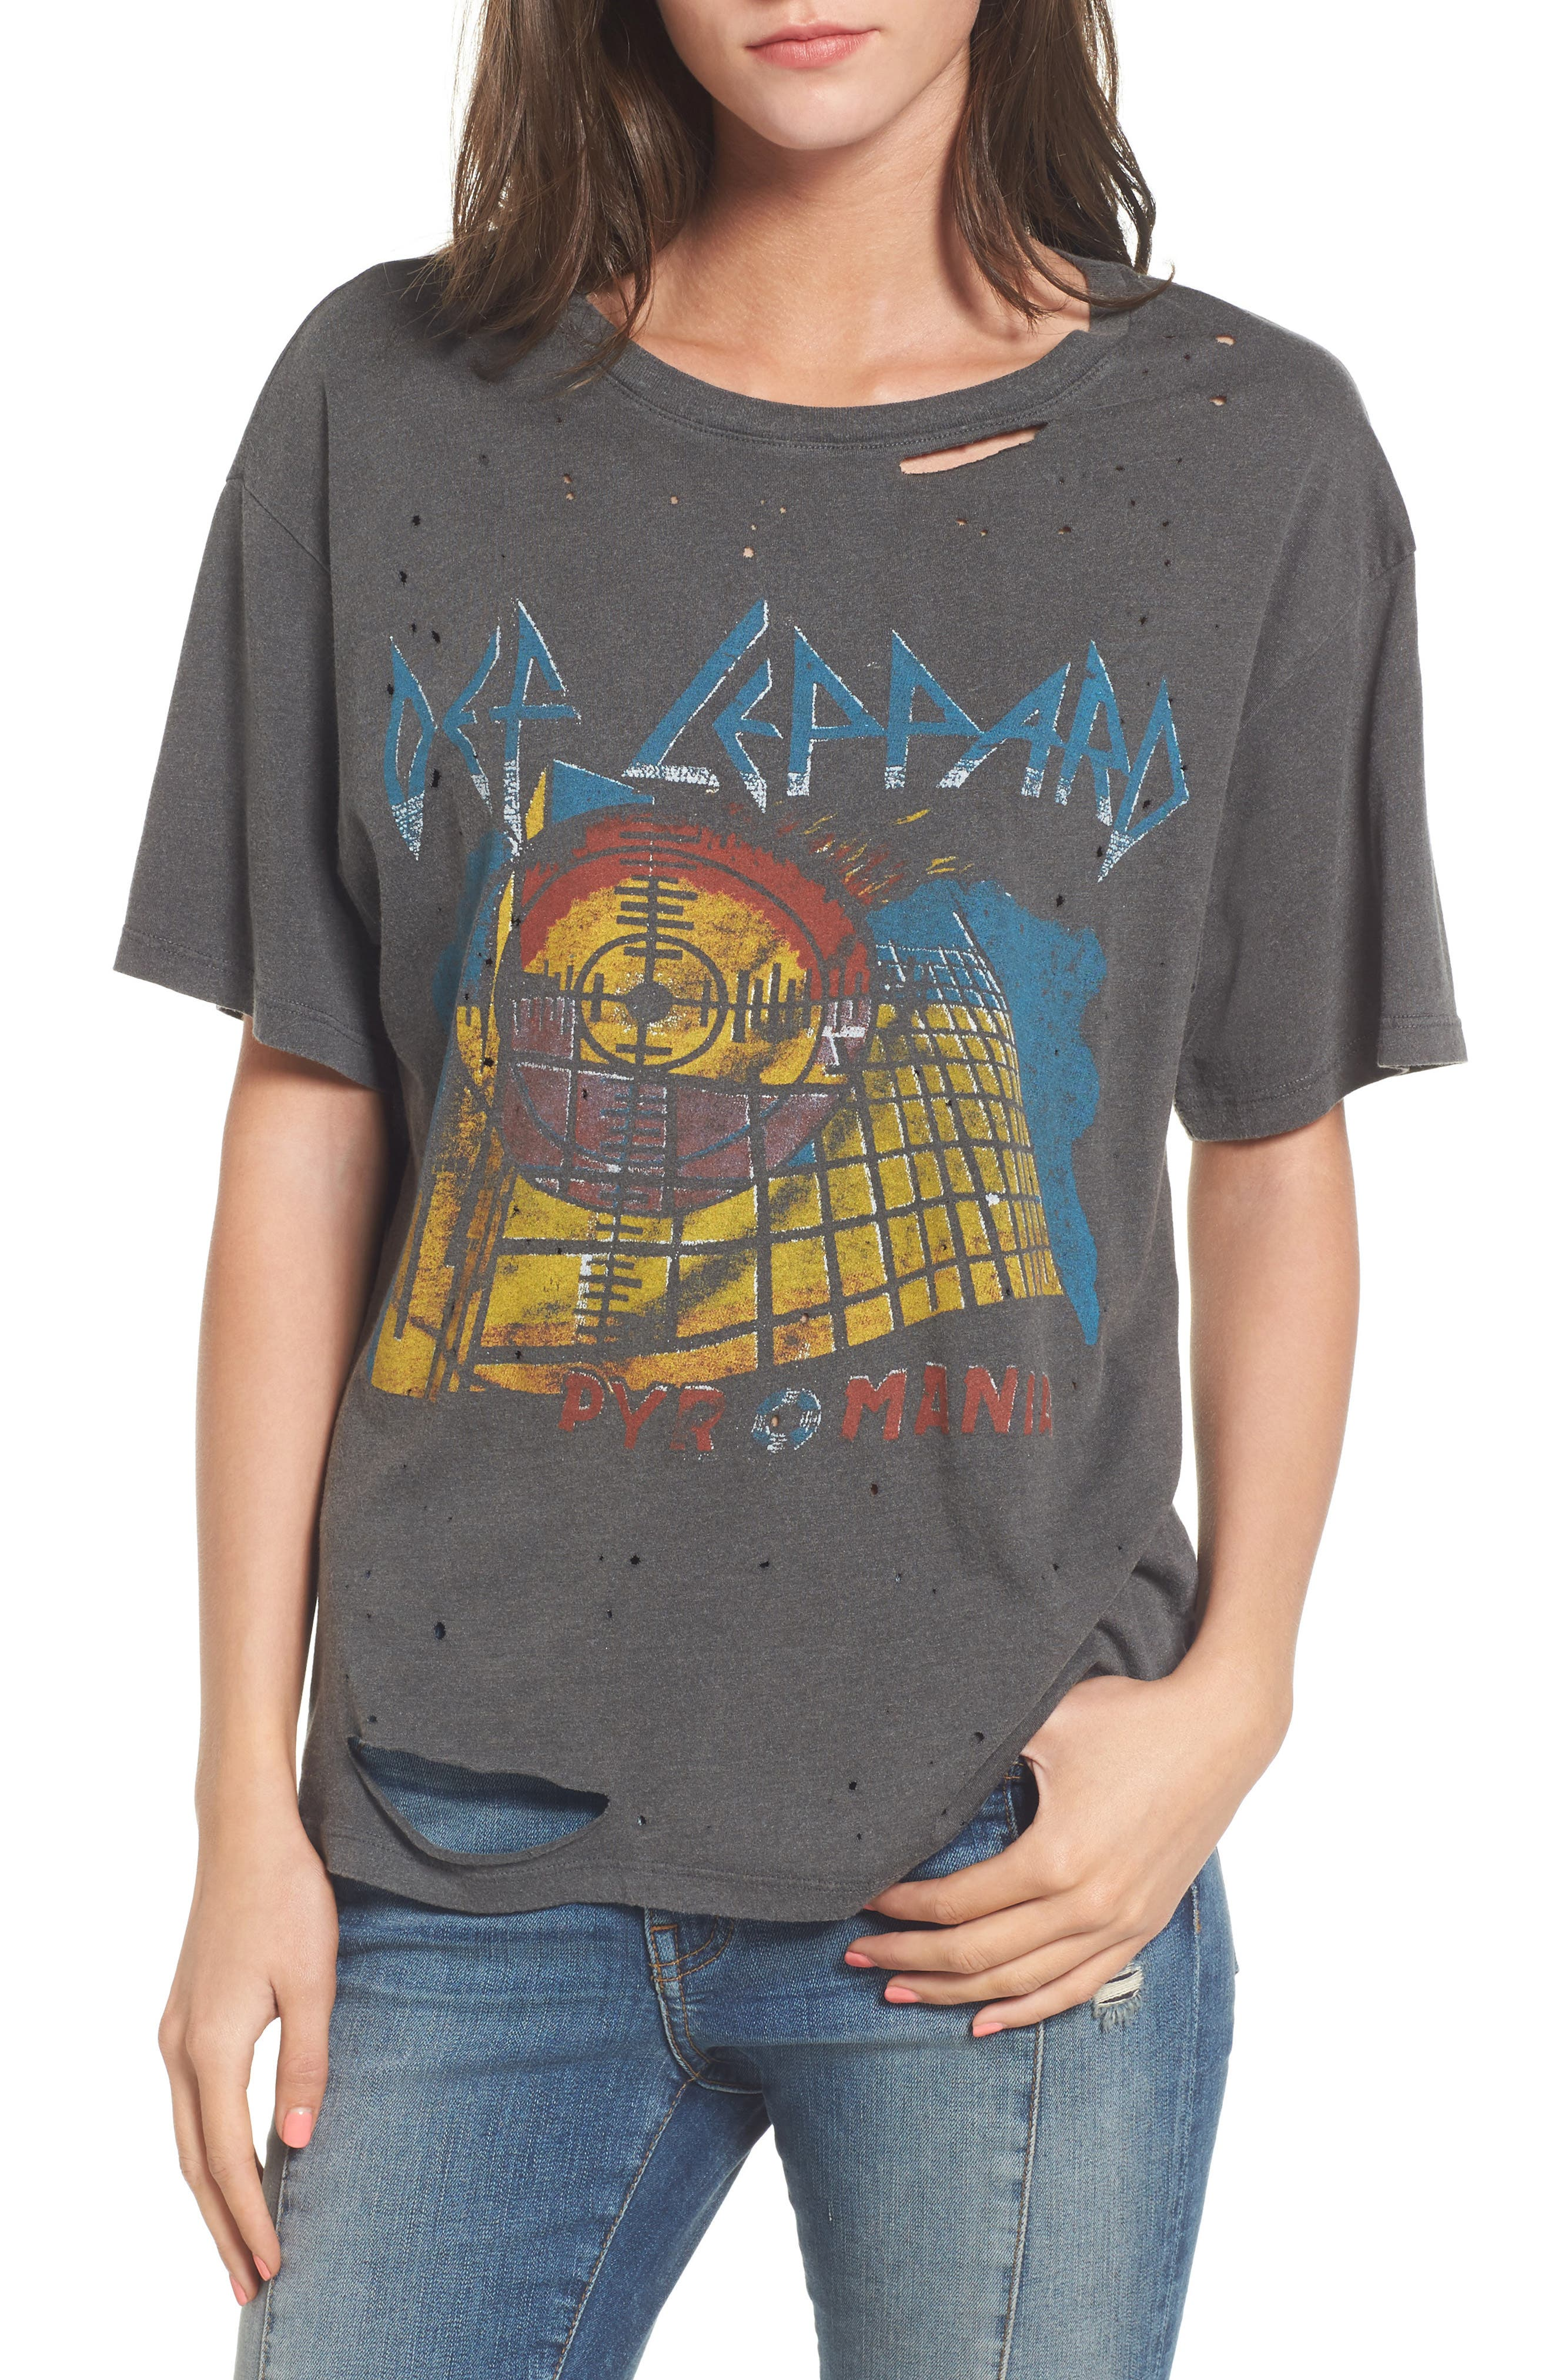 Daydreamer Def Leppard Ripped Graphic Tee